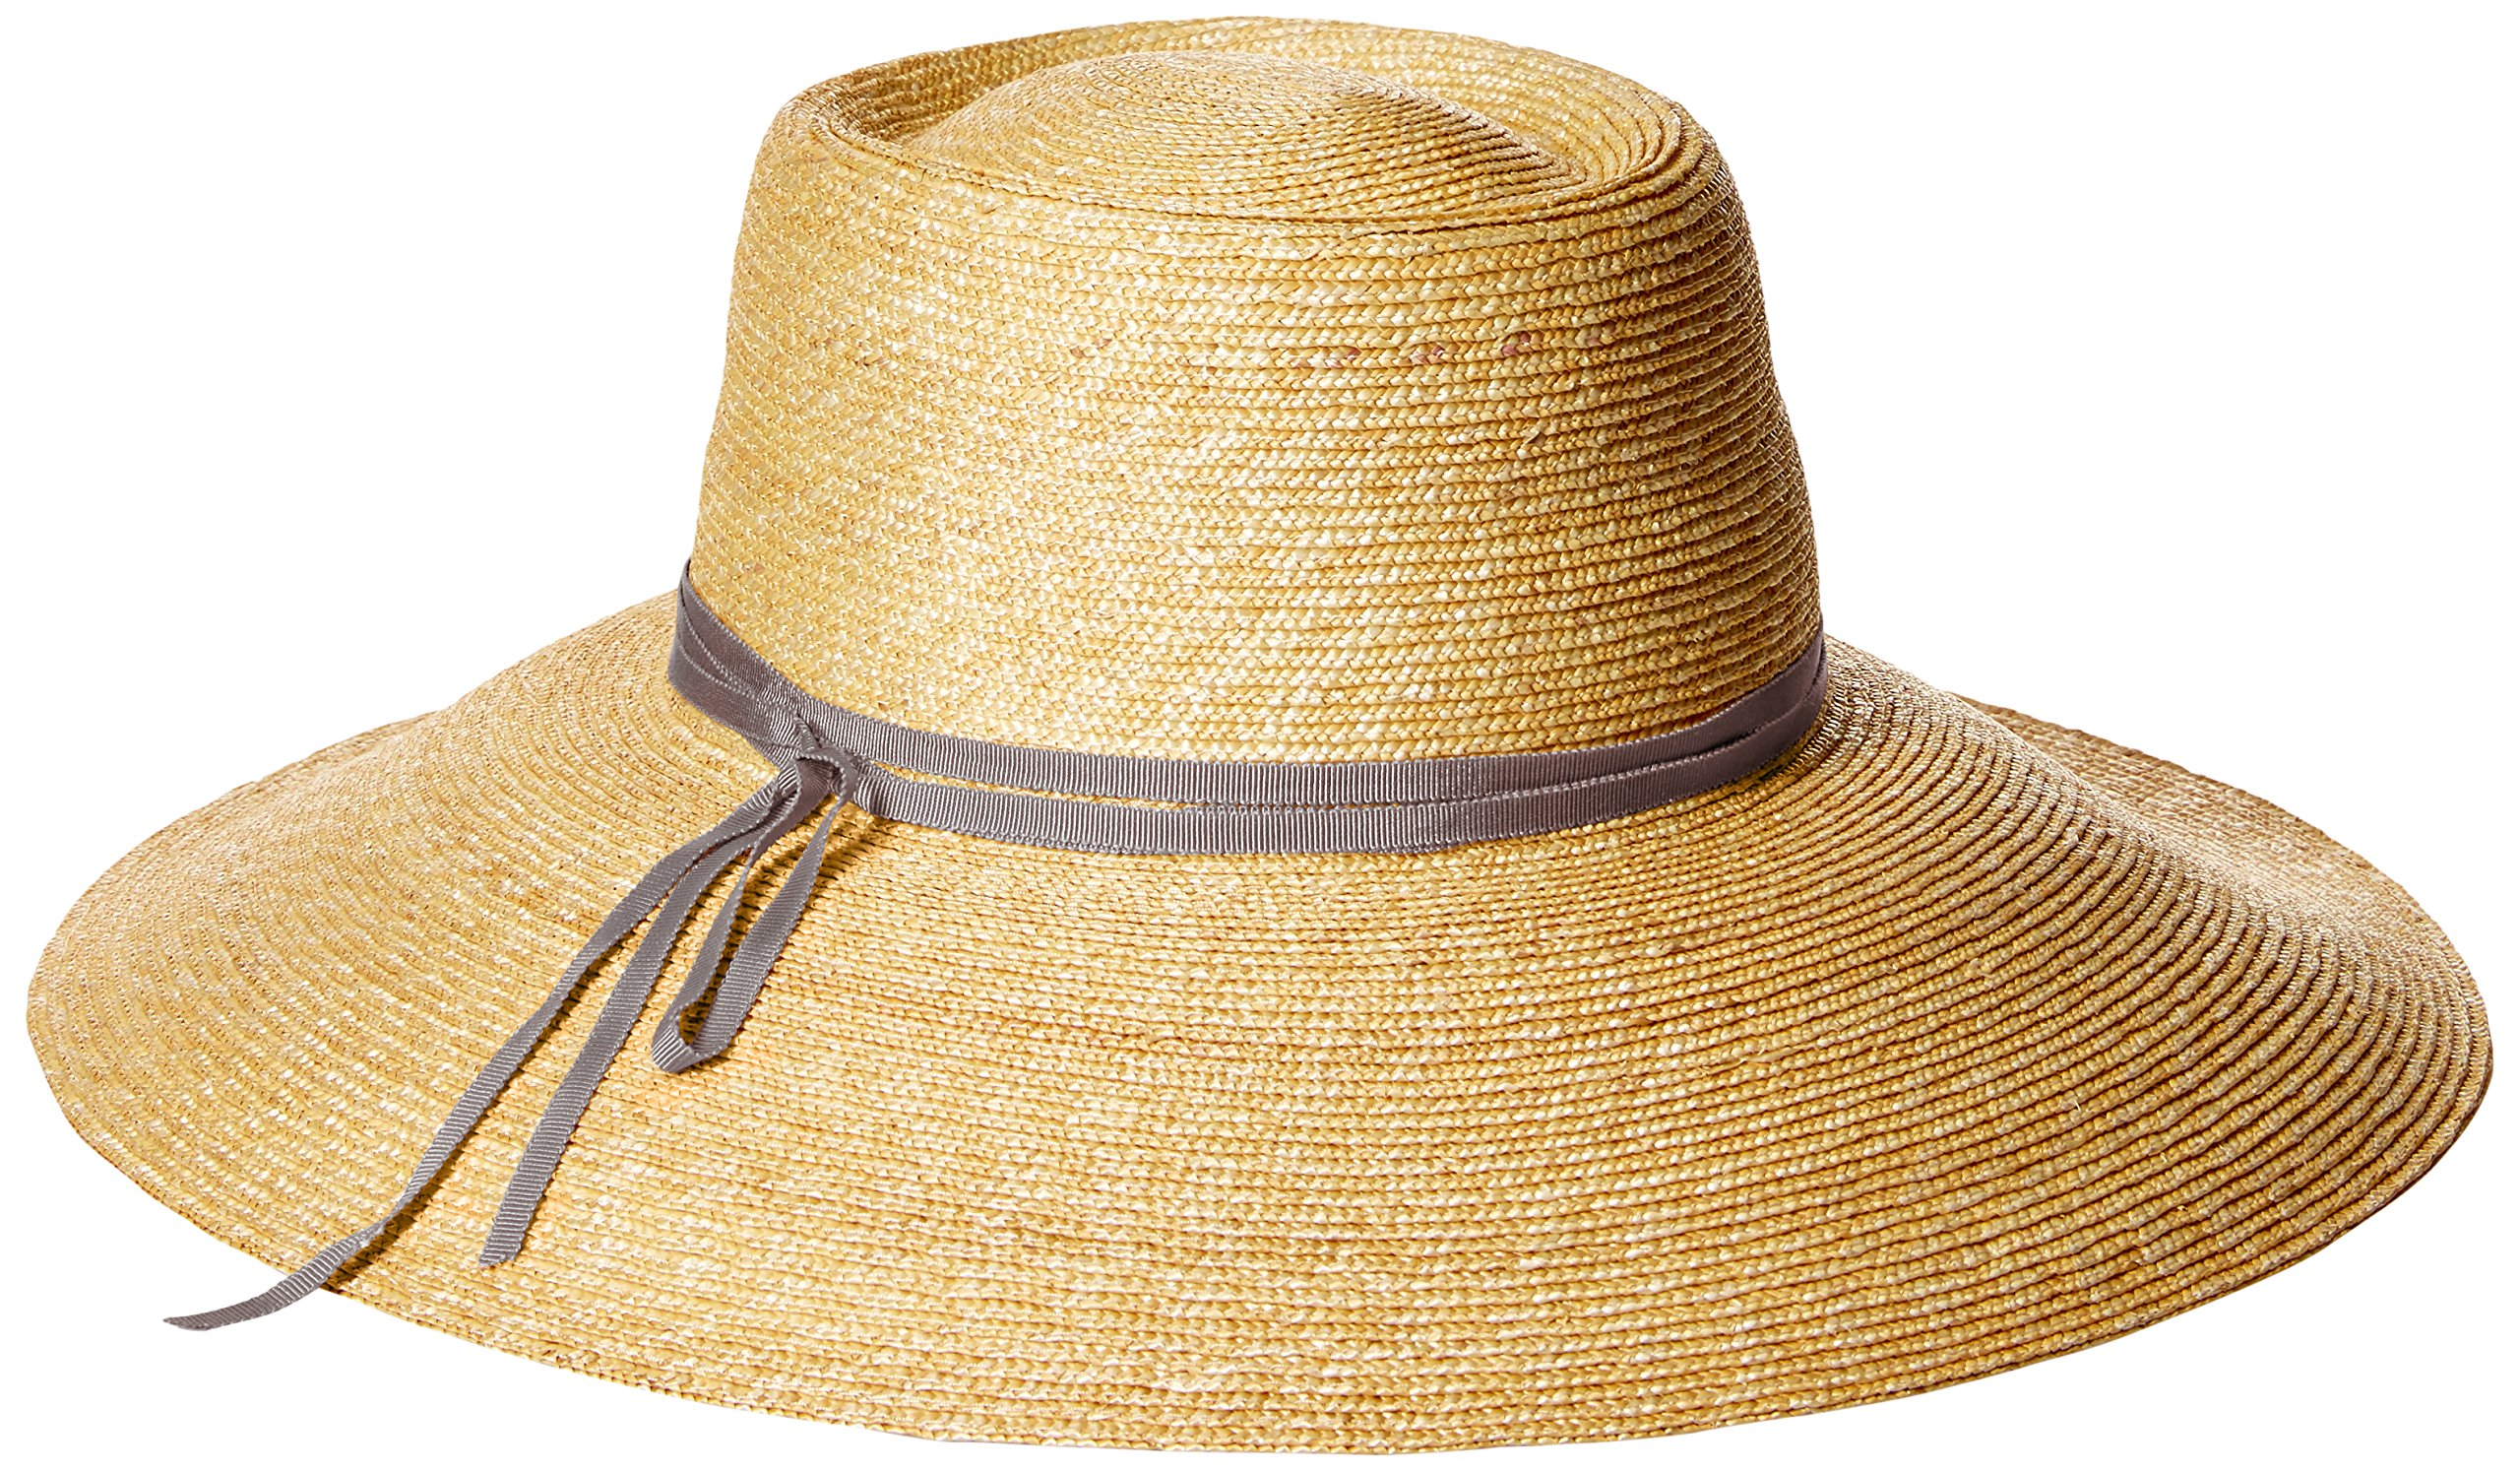 Gottex Women's Capri Fine Milan Sun Hat with Ribbon Trim, Rated UPF 50+ for Max Sun Protection, Natural/Gray, Adjustable Head Size